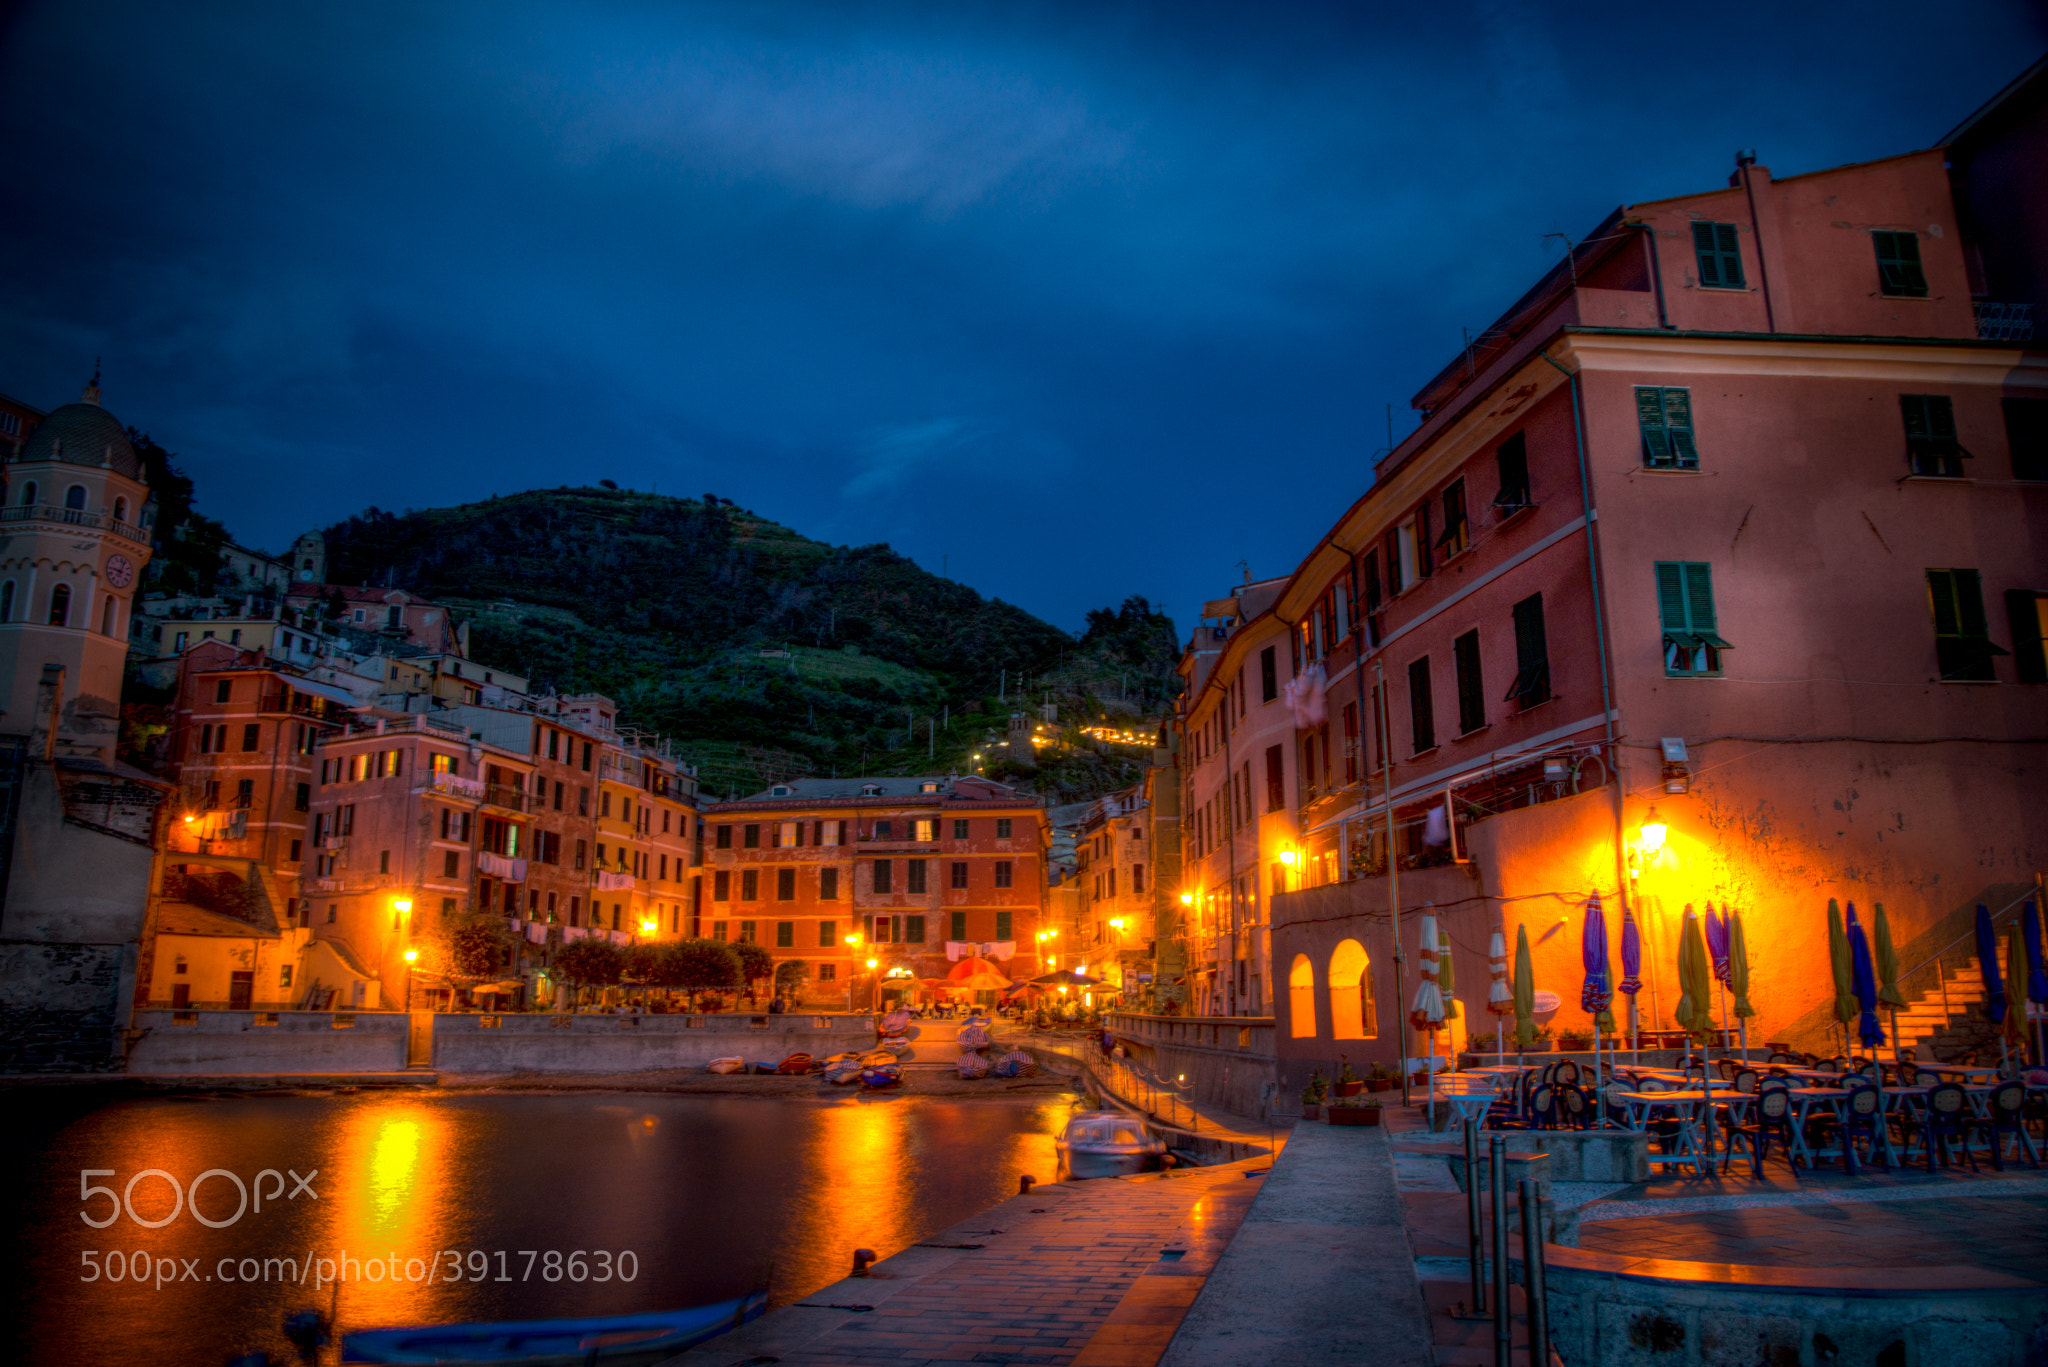 Photograph Vernazza at night by Stephen Album on 500px